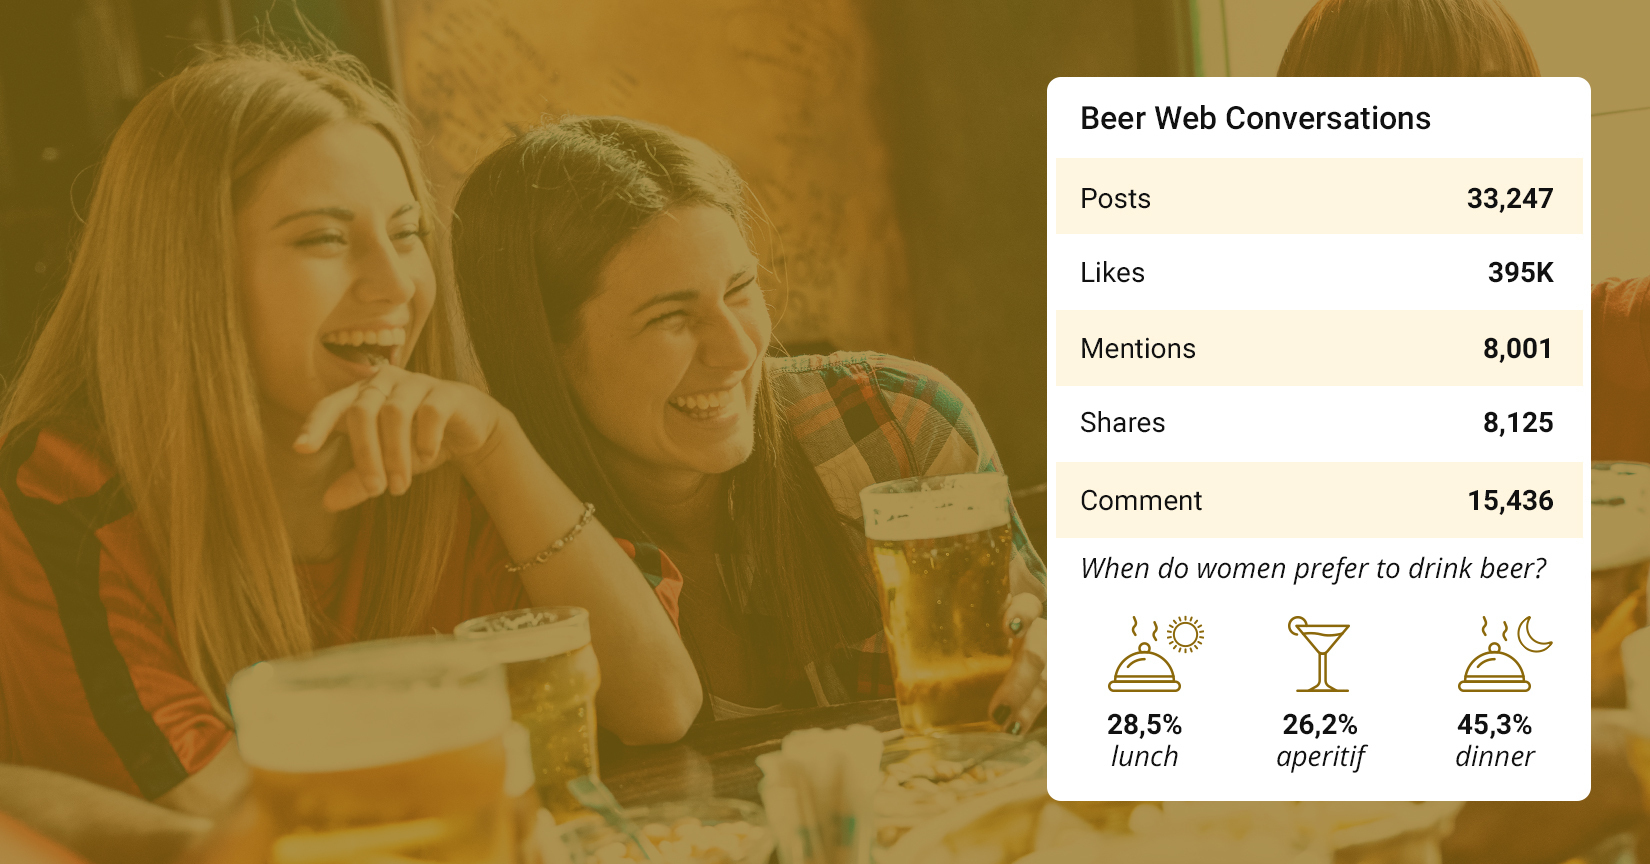 Beer online perception and female consumers